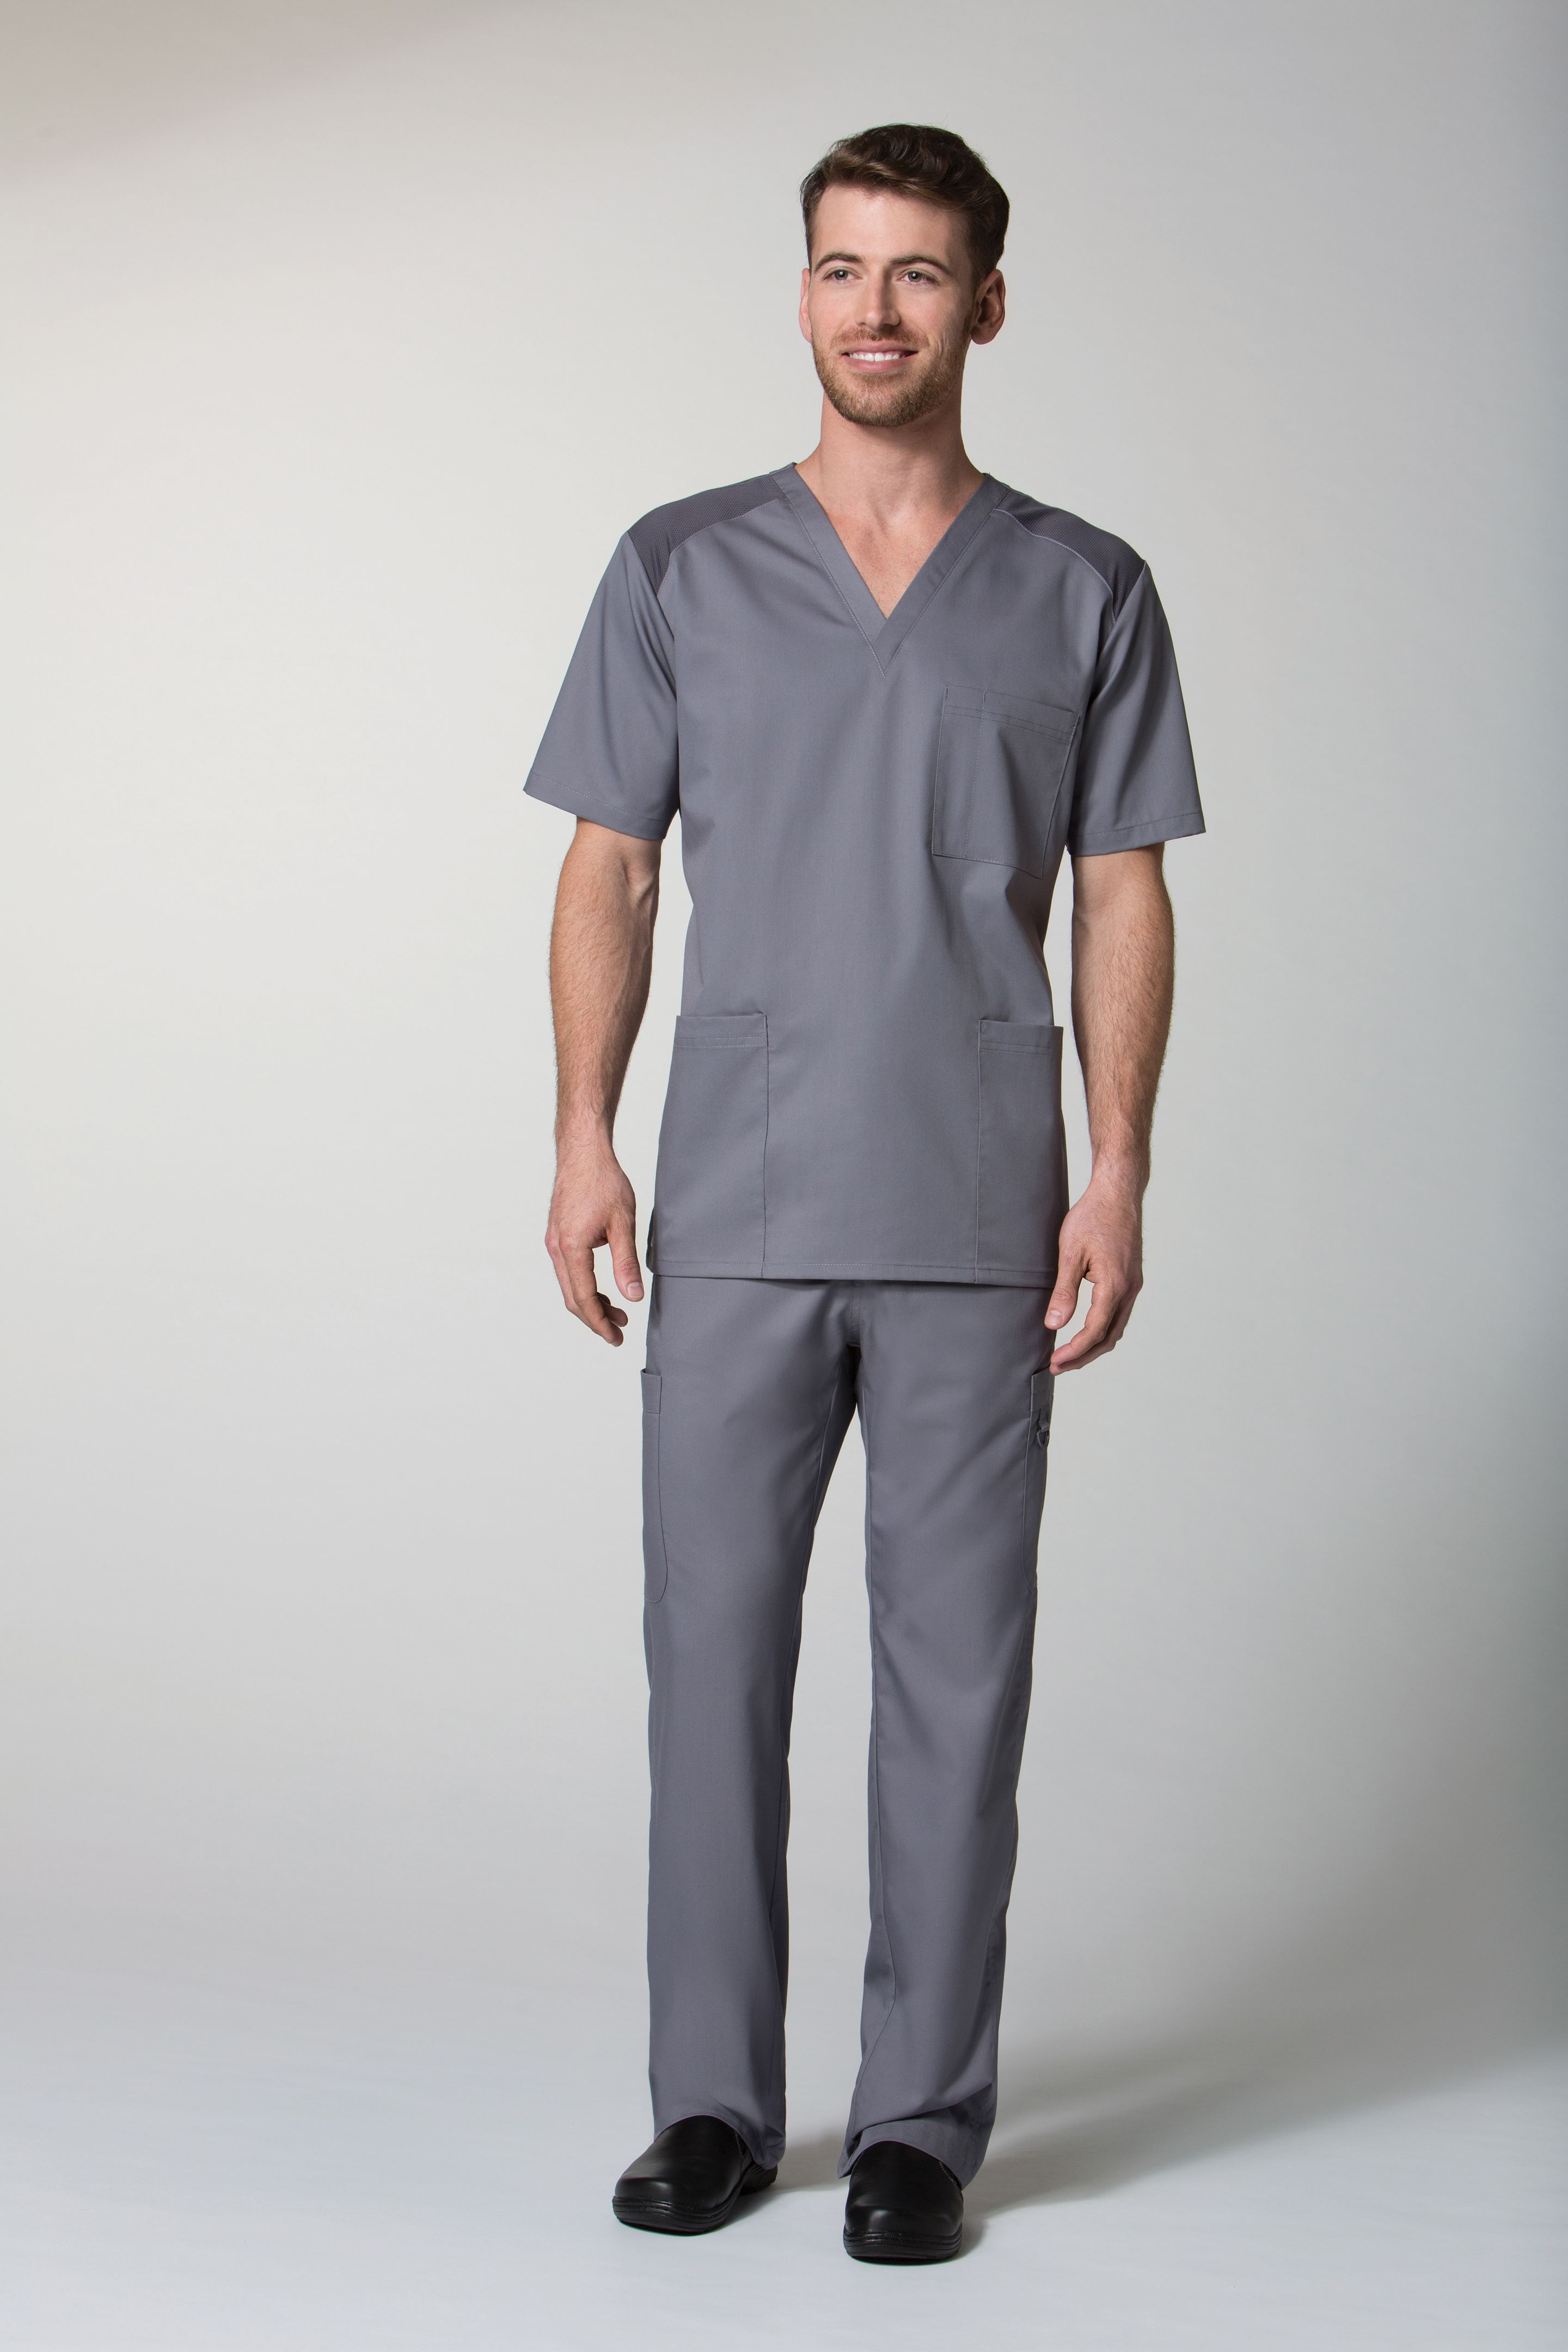 c4c10f48fb4 Our EON mens scrub top has all the necessities for any guy in the medical  industry